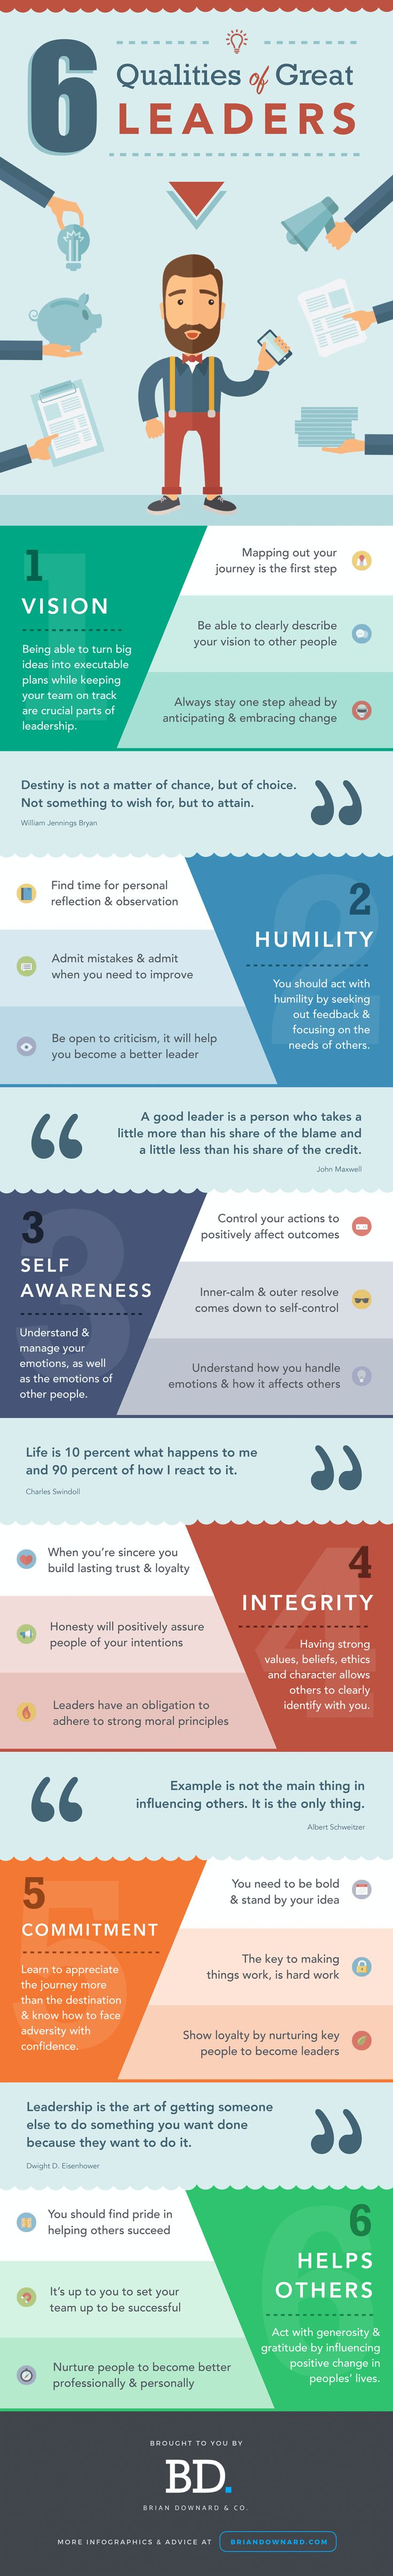 Infographic: 6 Qualities of Great Leaders |